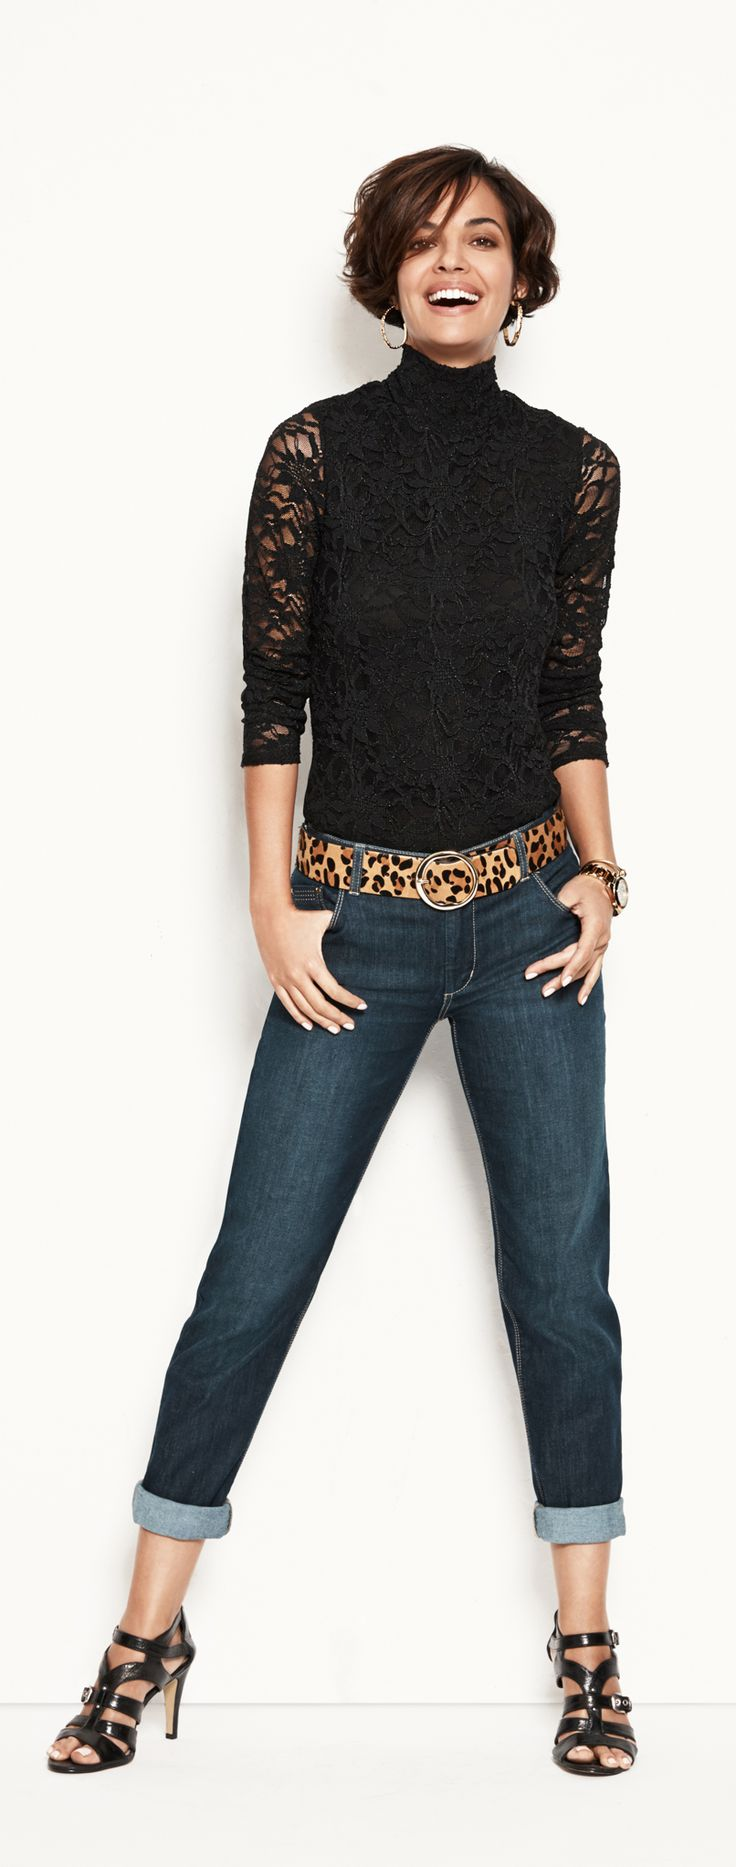 Lace Turtleneck.   Wear it now, with boyfriend jeans and a little leopard.